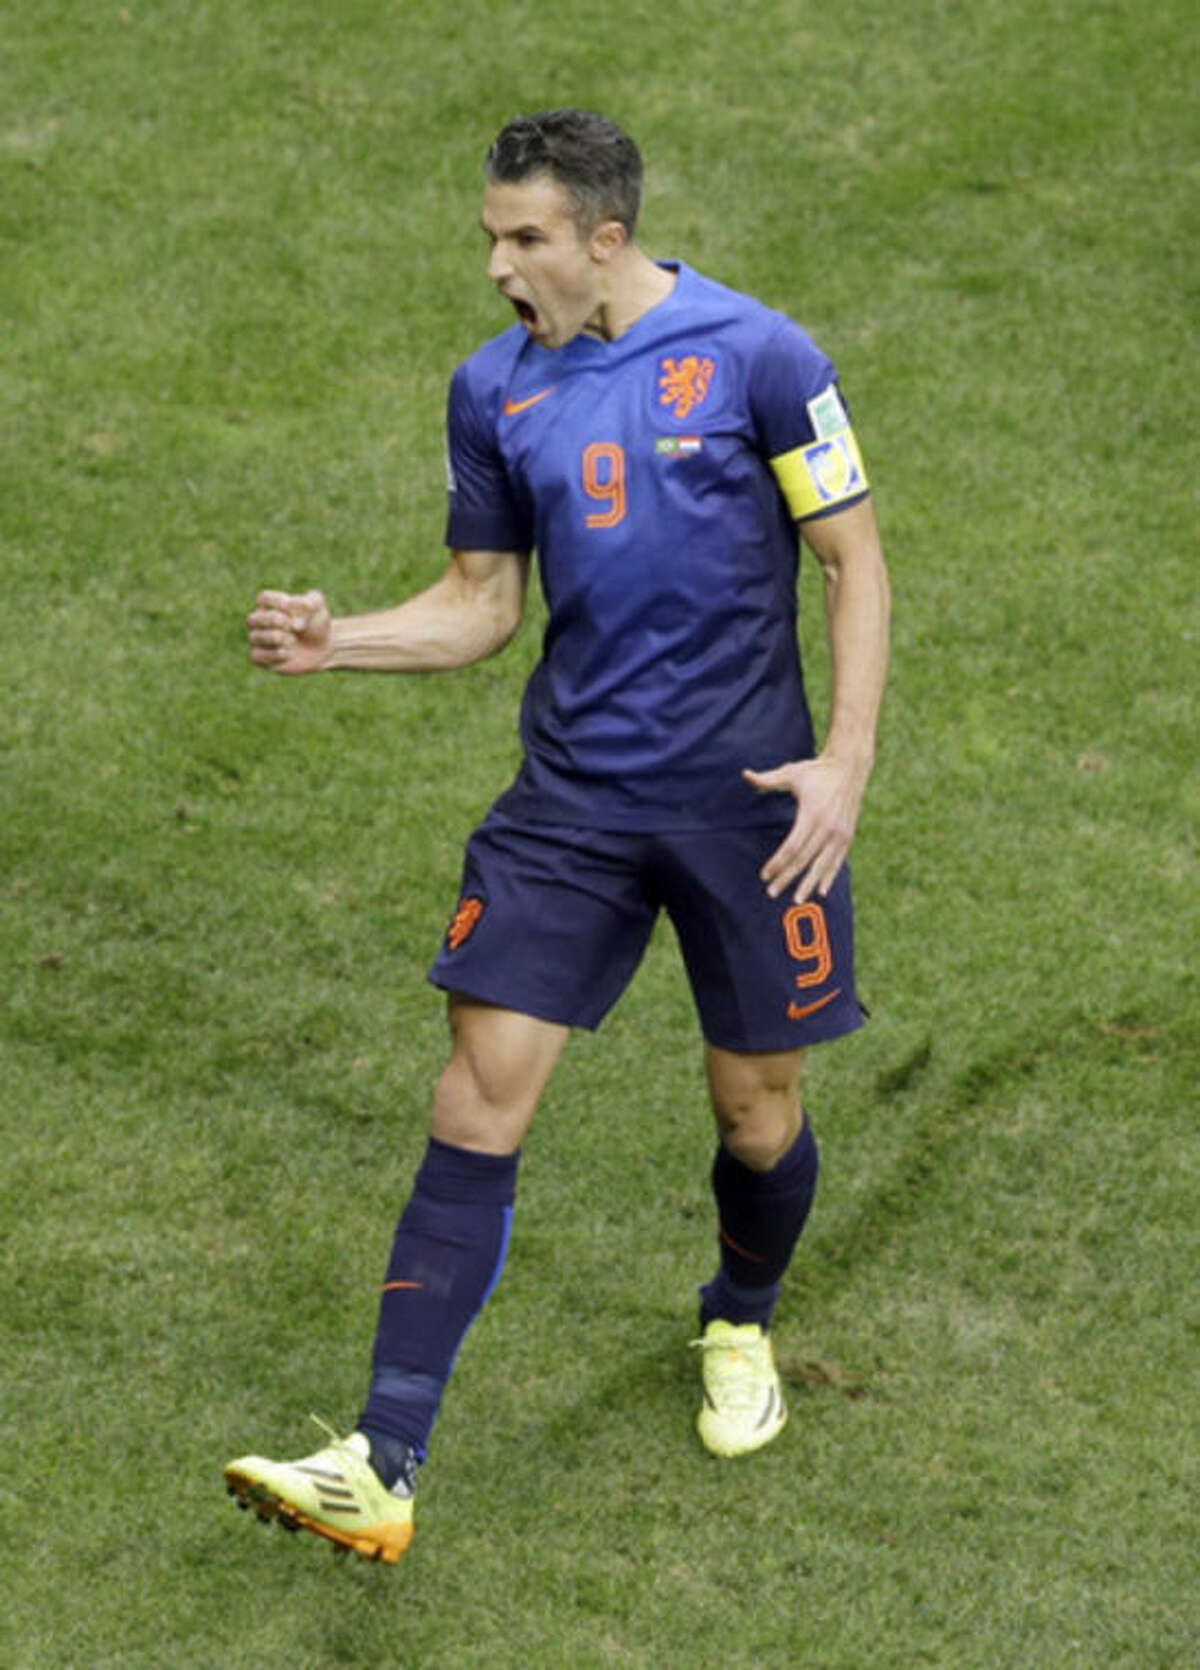 Netherlands' Robin van Persie celebrates after scoring a penalty during the World Cup third-place soccer match between Brazil and the Netherlands at the Estadio Nacional in Brasilia, Brazil, Saturday, July 12, 2014. (AP Photo/Themba Hadebe)